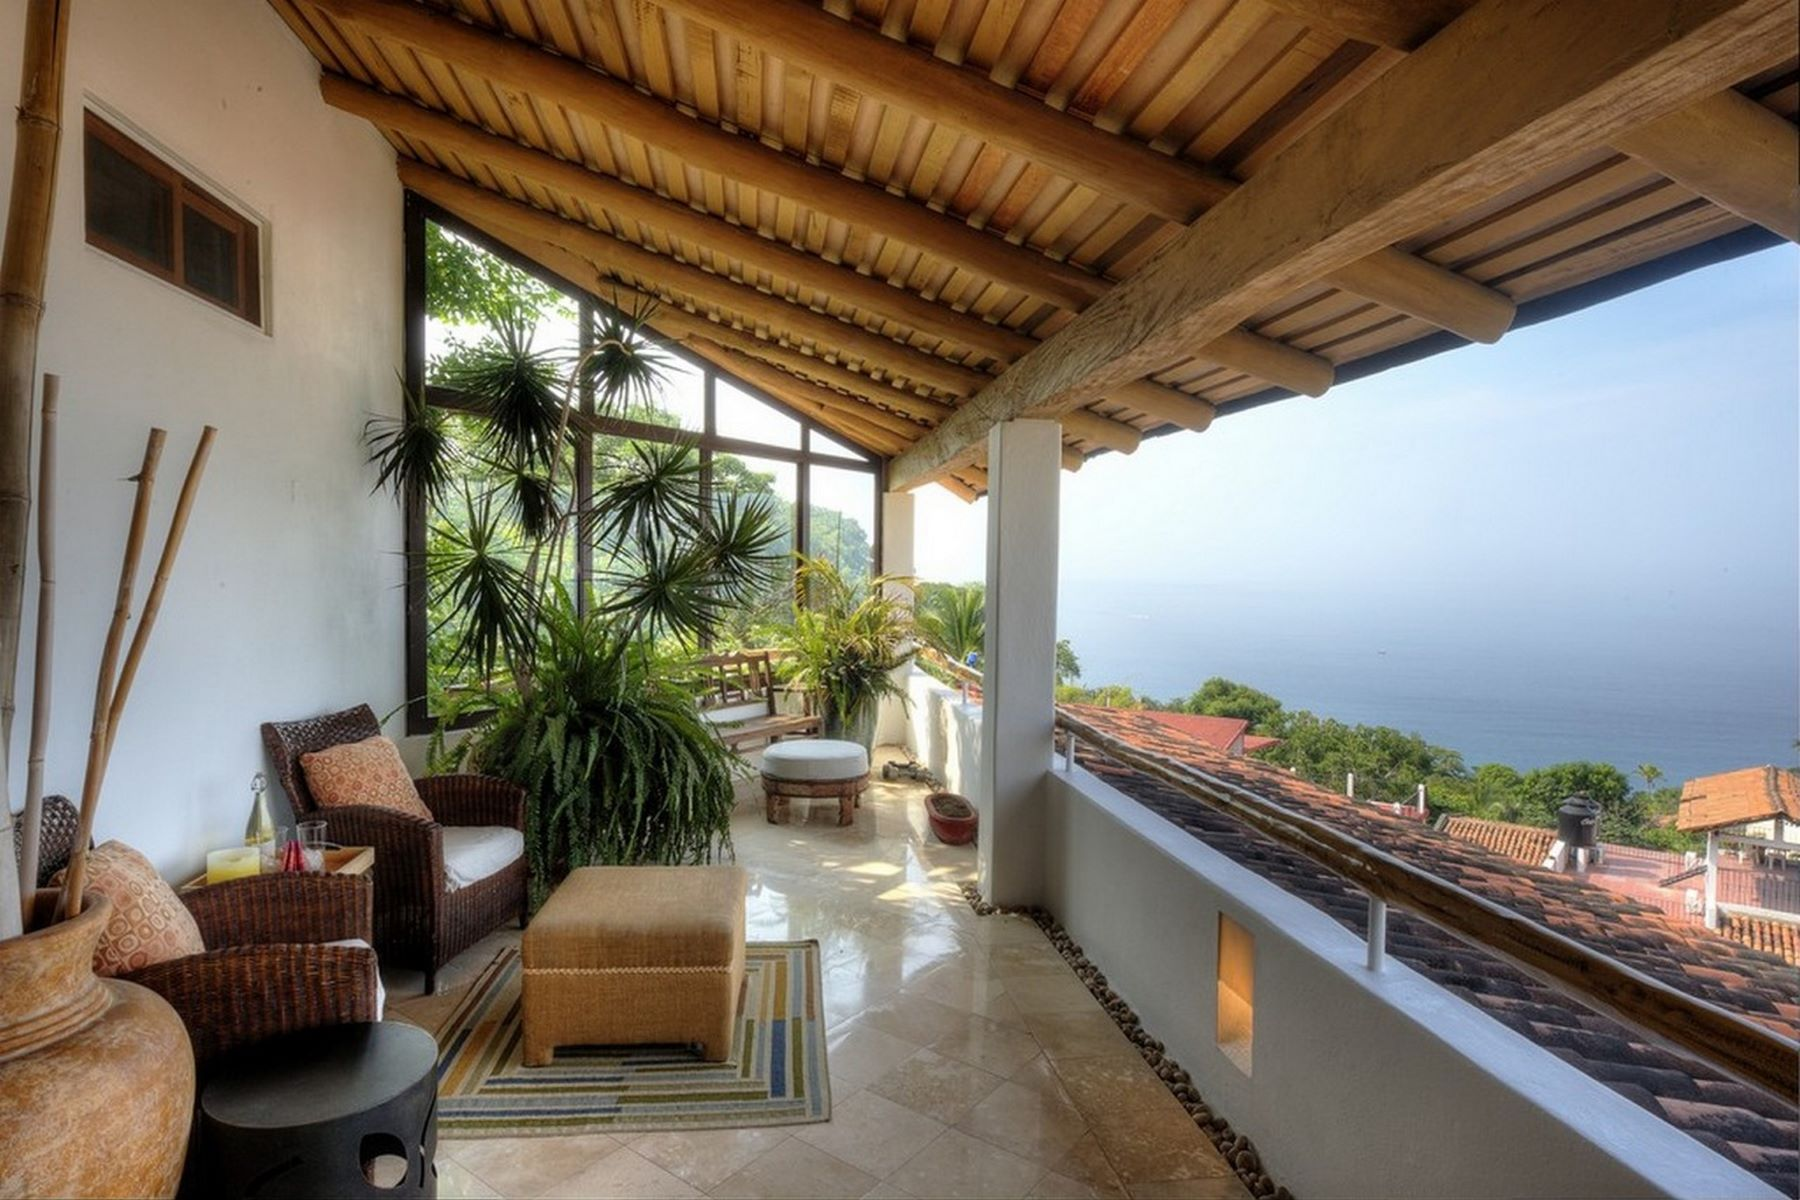 Condominium for Sale at Montemar 8 Paseo de los Delfines 136 DP 8 Puerto Vallarta, 48399 Mexico